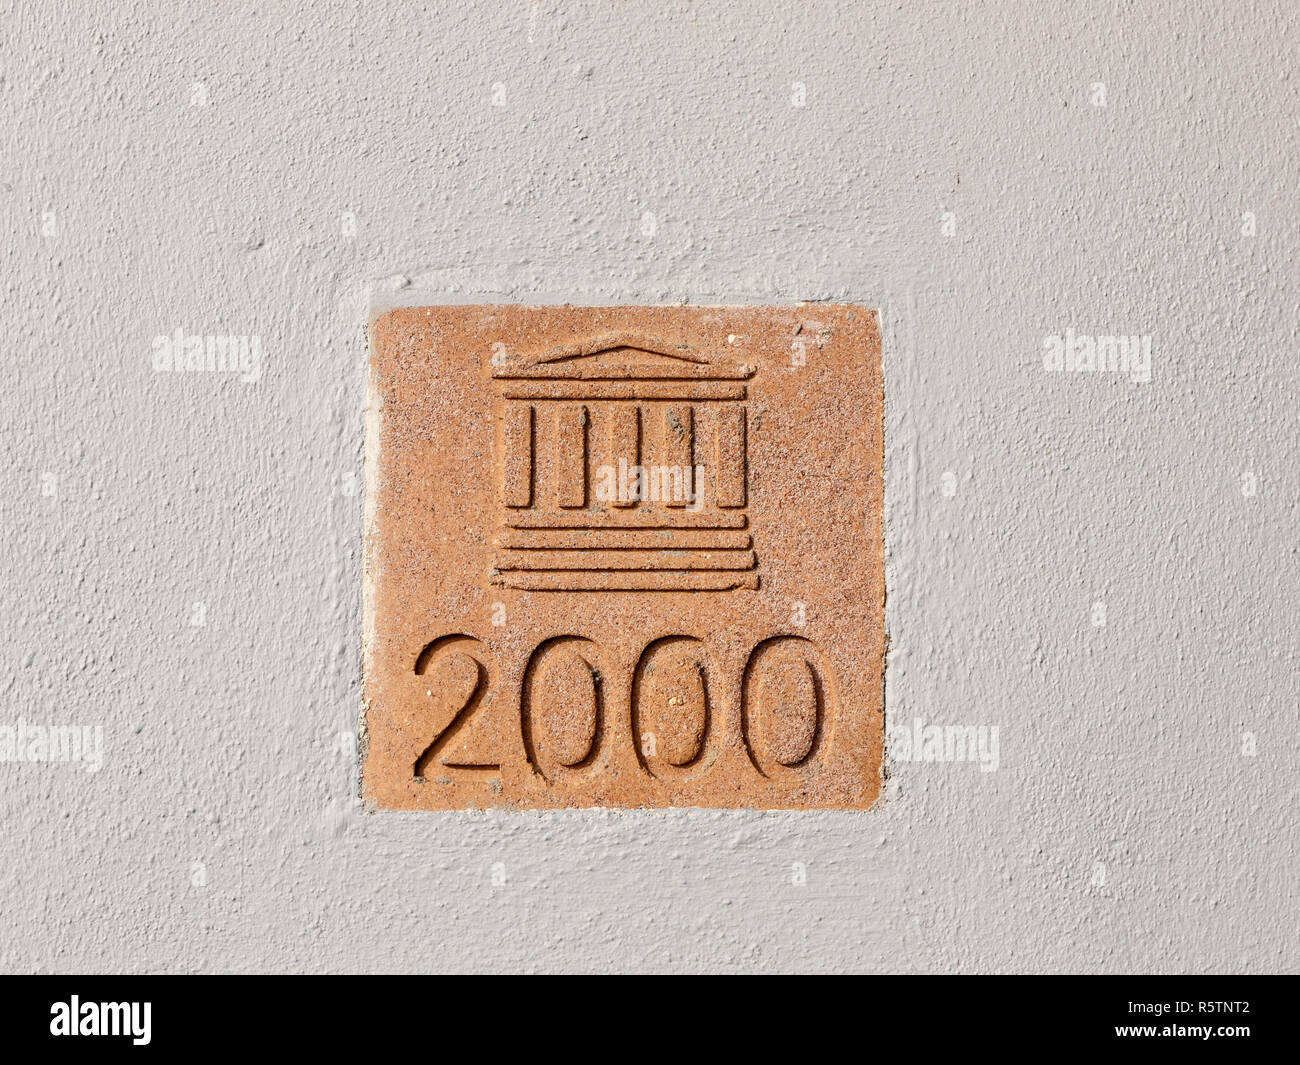 sign on wall outside 2000 column building plaque Stock Photo